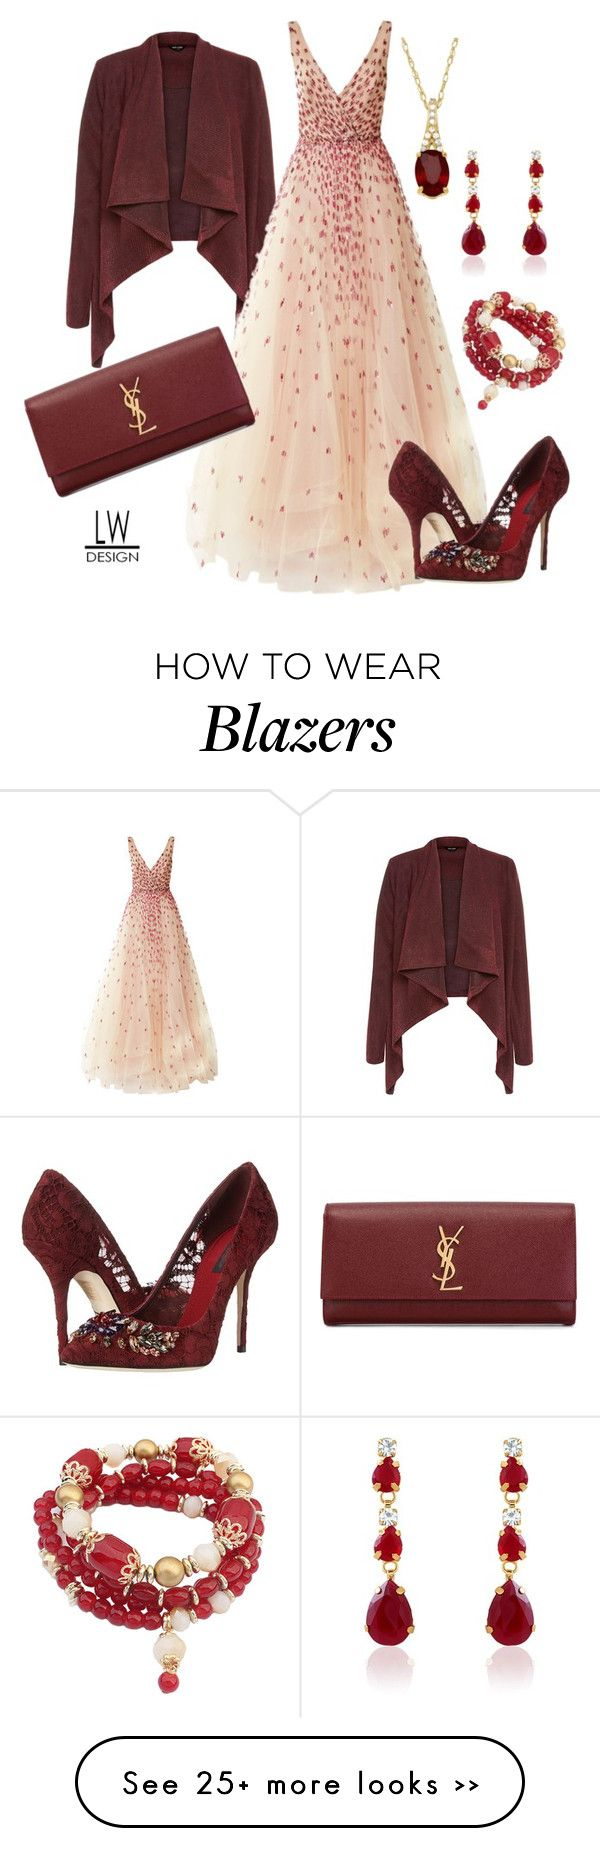 """Burgundy Accents"" by kashmier on Polyvore featuring Monique Lhuillier, Dolce&Gabbana, Yves Saint Laurent, gown, eveningwear and leatherwooddesign"